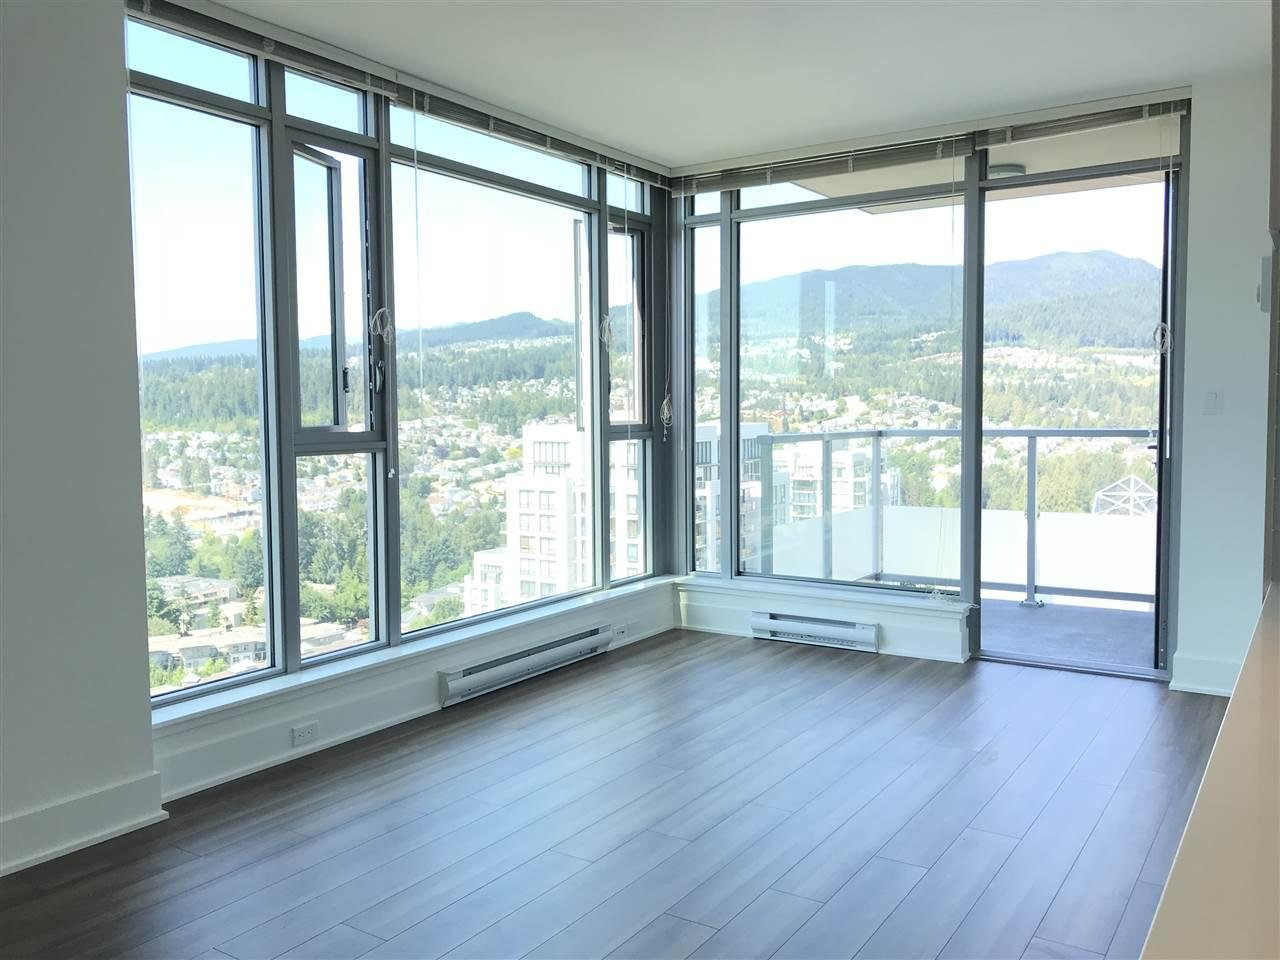 3503 1188 Pinetree Way, Coquitlam - 1 bed, 1 bath - For Sale